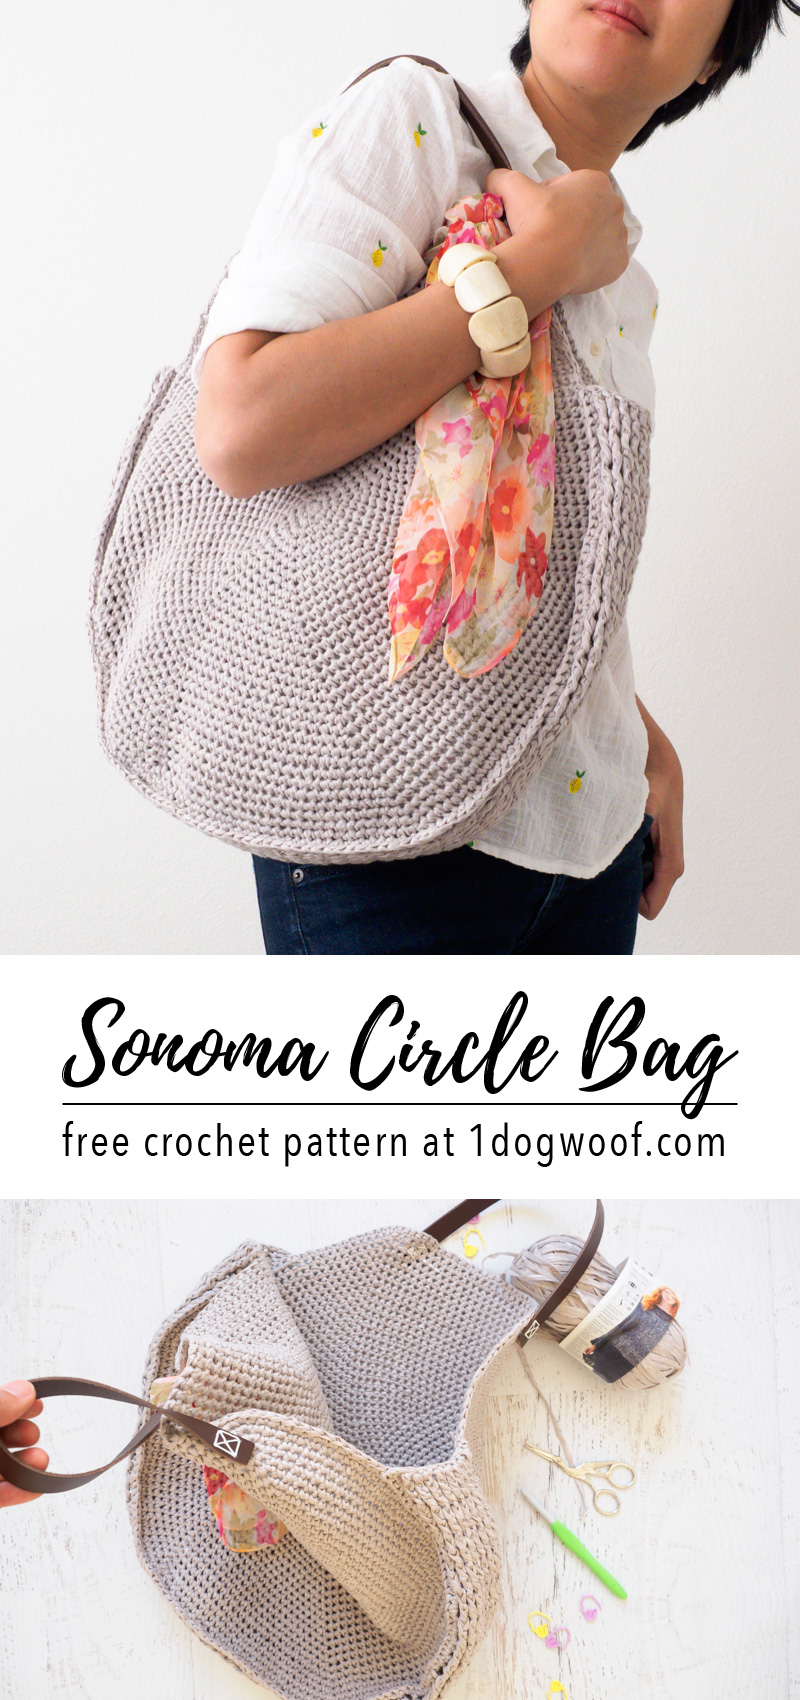 Sonoma Circle Bag tall photo